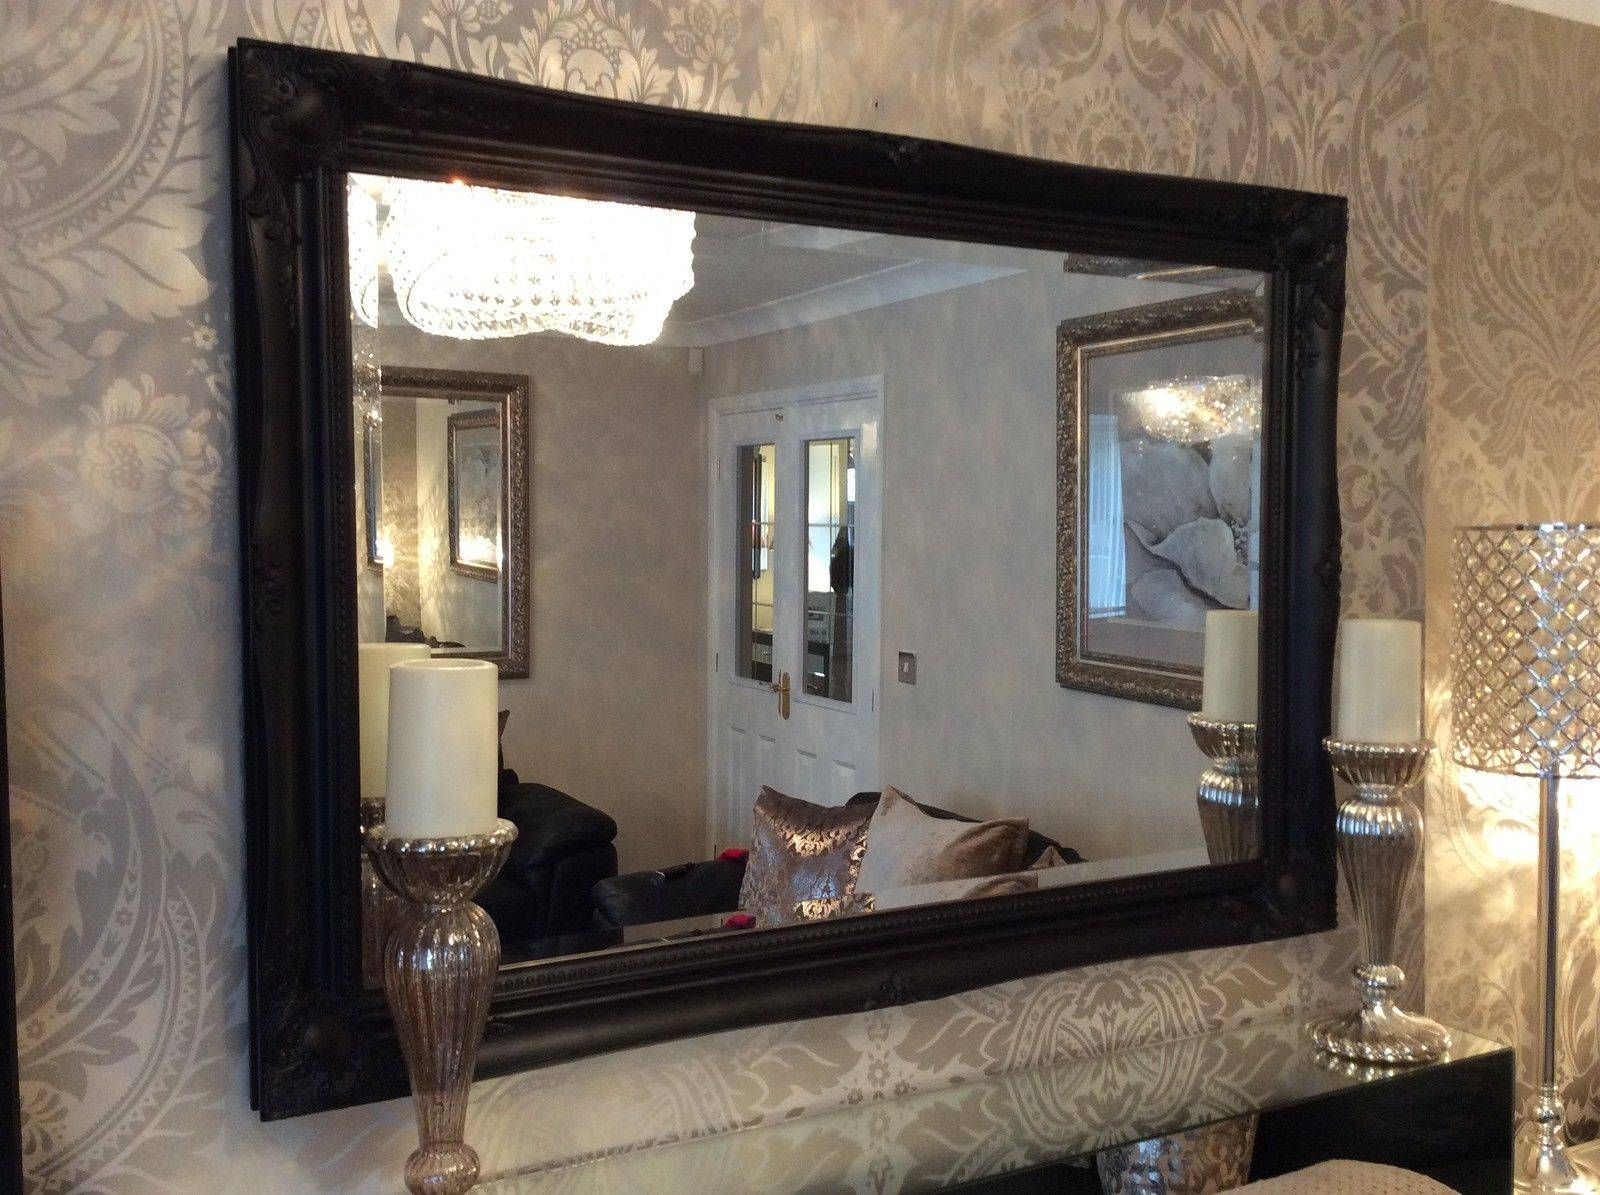 New Large Black Shabby Chic Bevelled Wall Mirror - 36Inch X 26Inch intended for Long Black Wall Mirrors (Image 13 of 15)